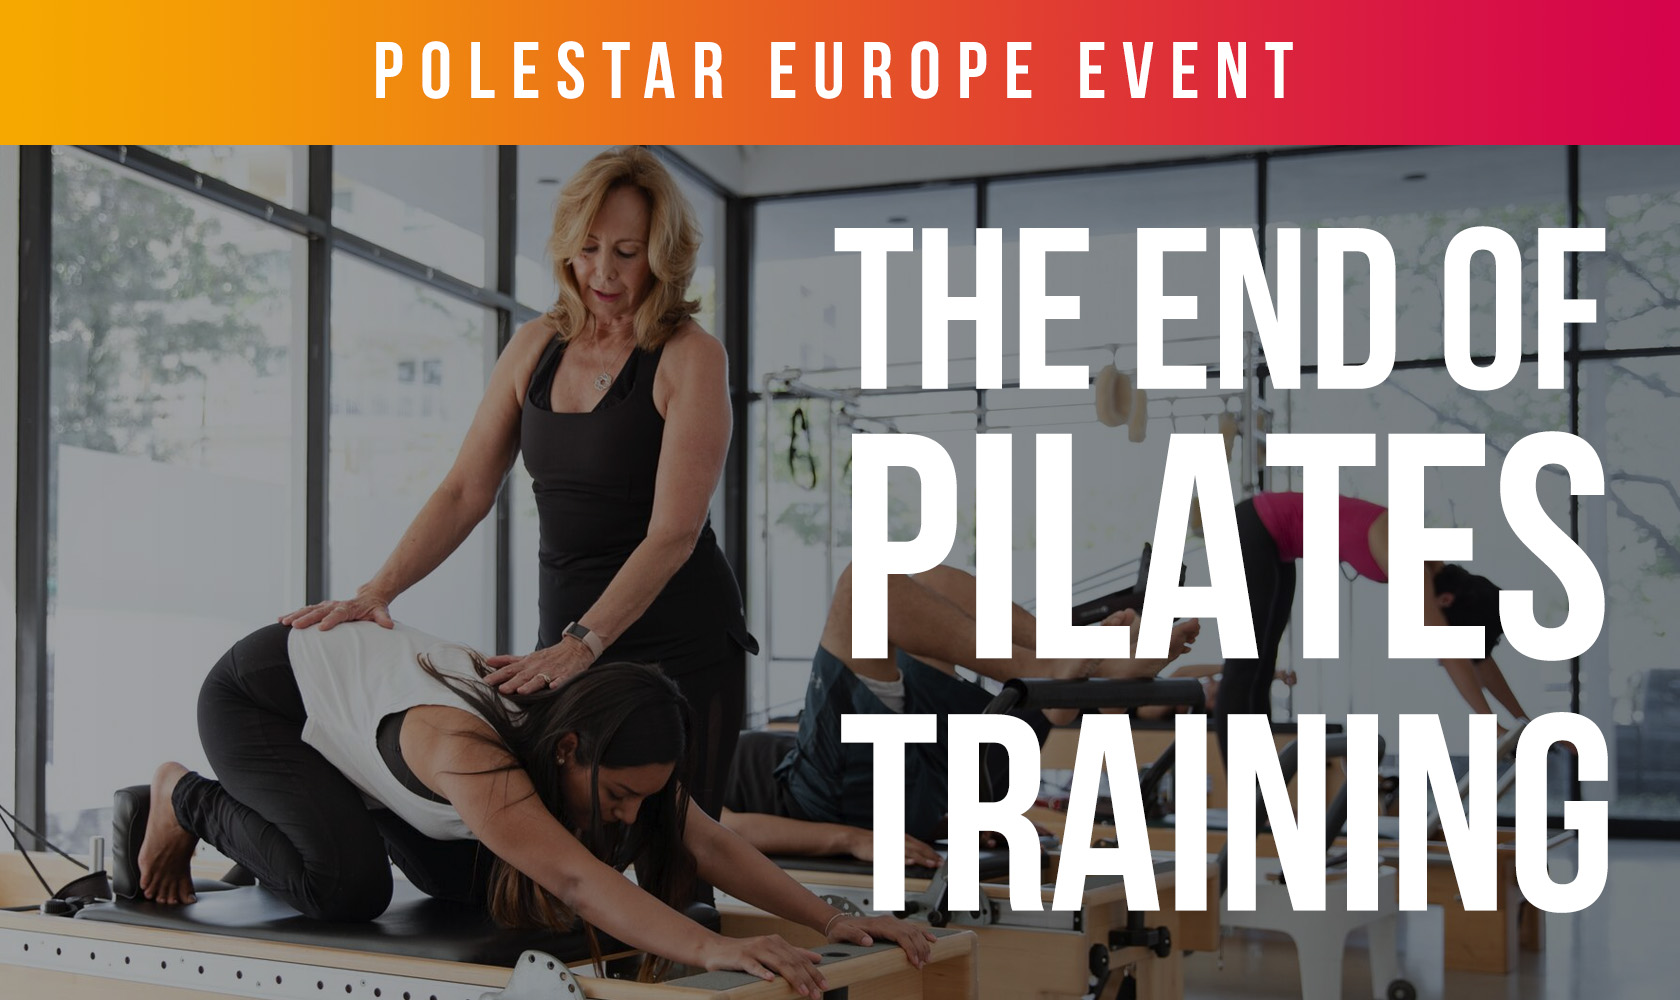 The End of Pilates Training (Polestar Europe Conference)